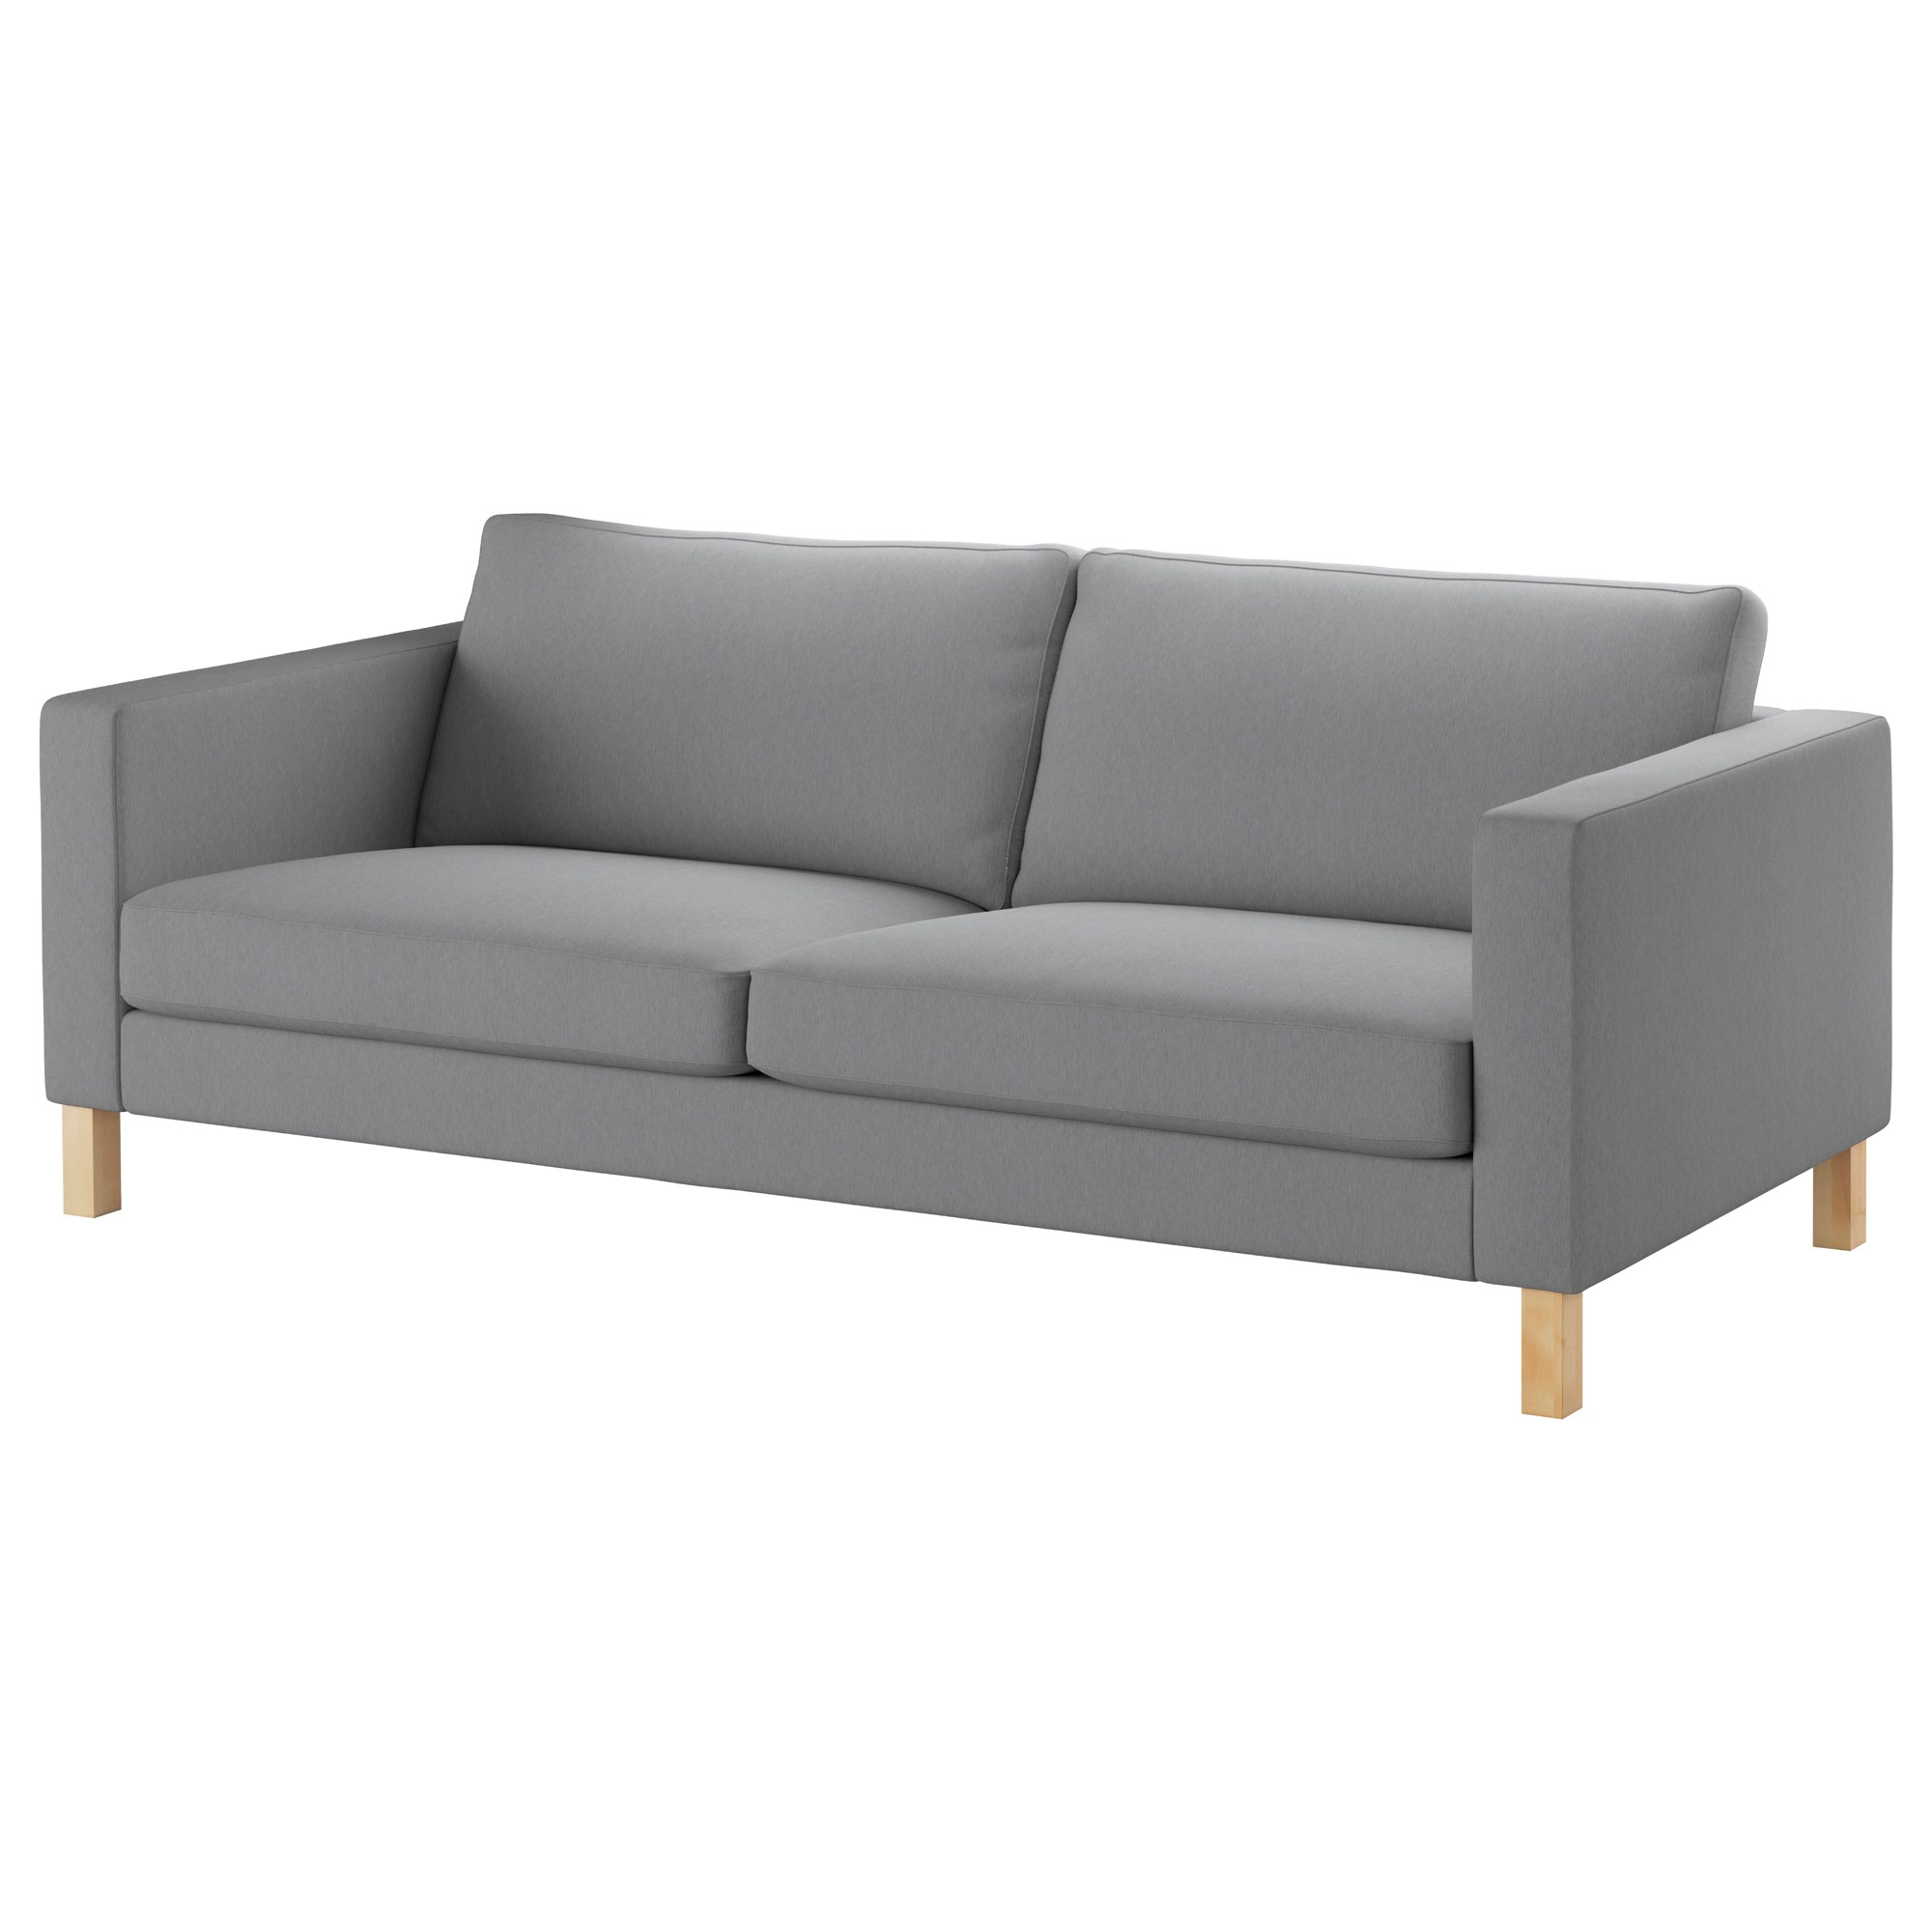 Futonsessel Ikea Karlstad Sofa Knisa Light Gray